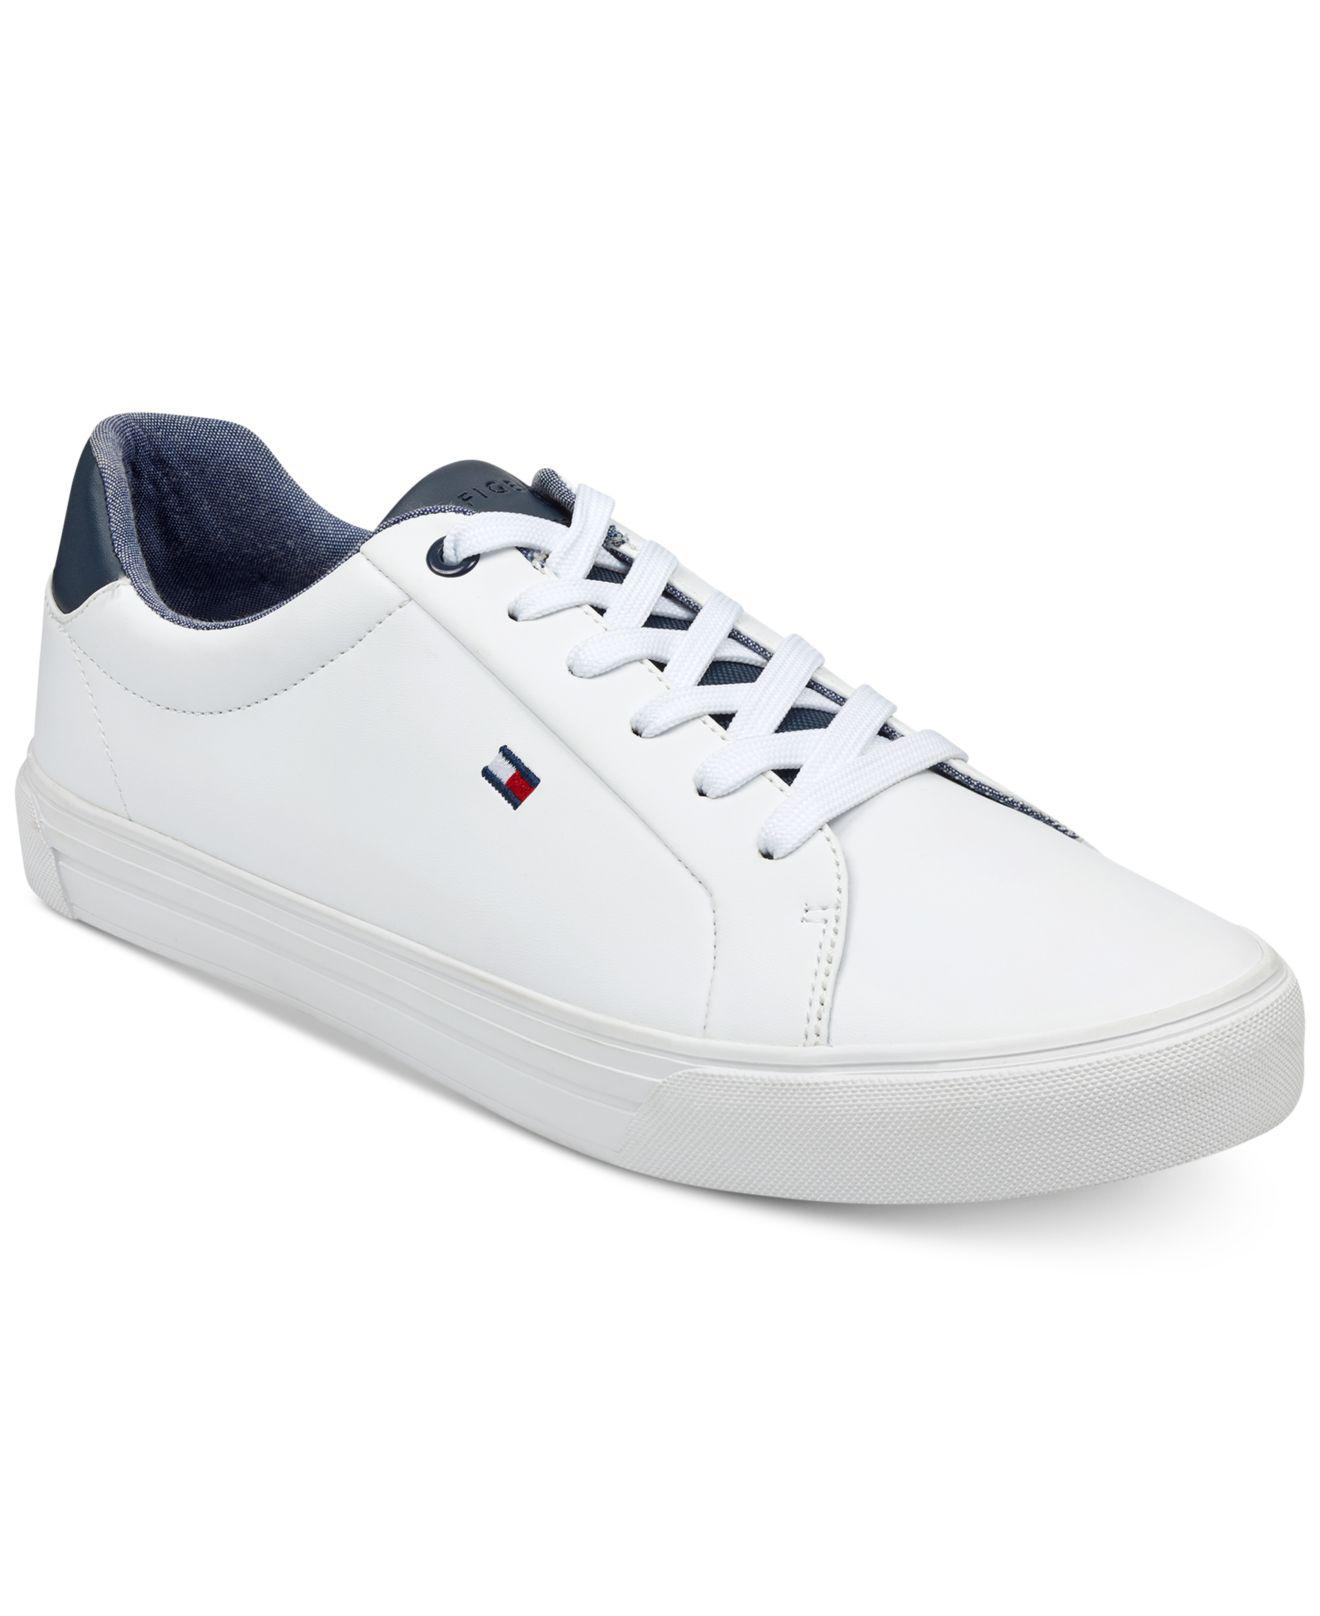 6b4477e7dfe944 Lyst - Tommy Hilfiger Ref Low-top Sneakers in White for Men